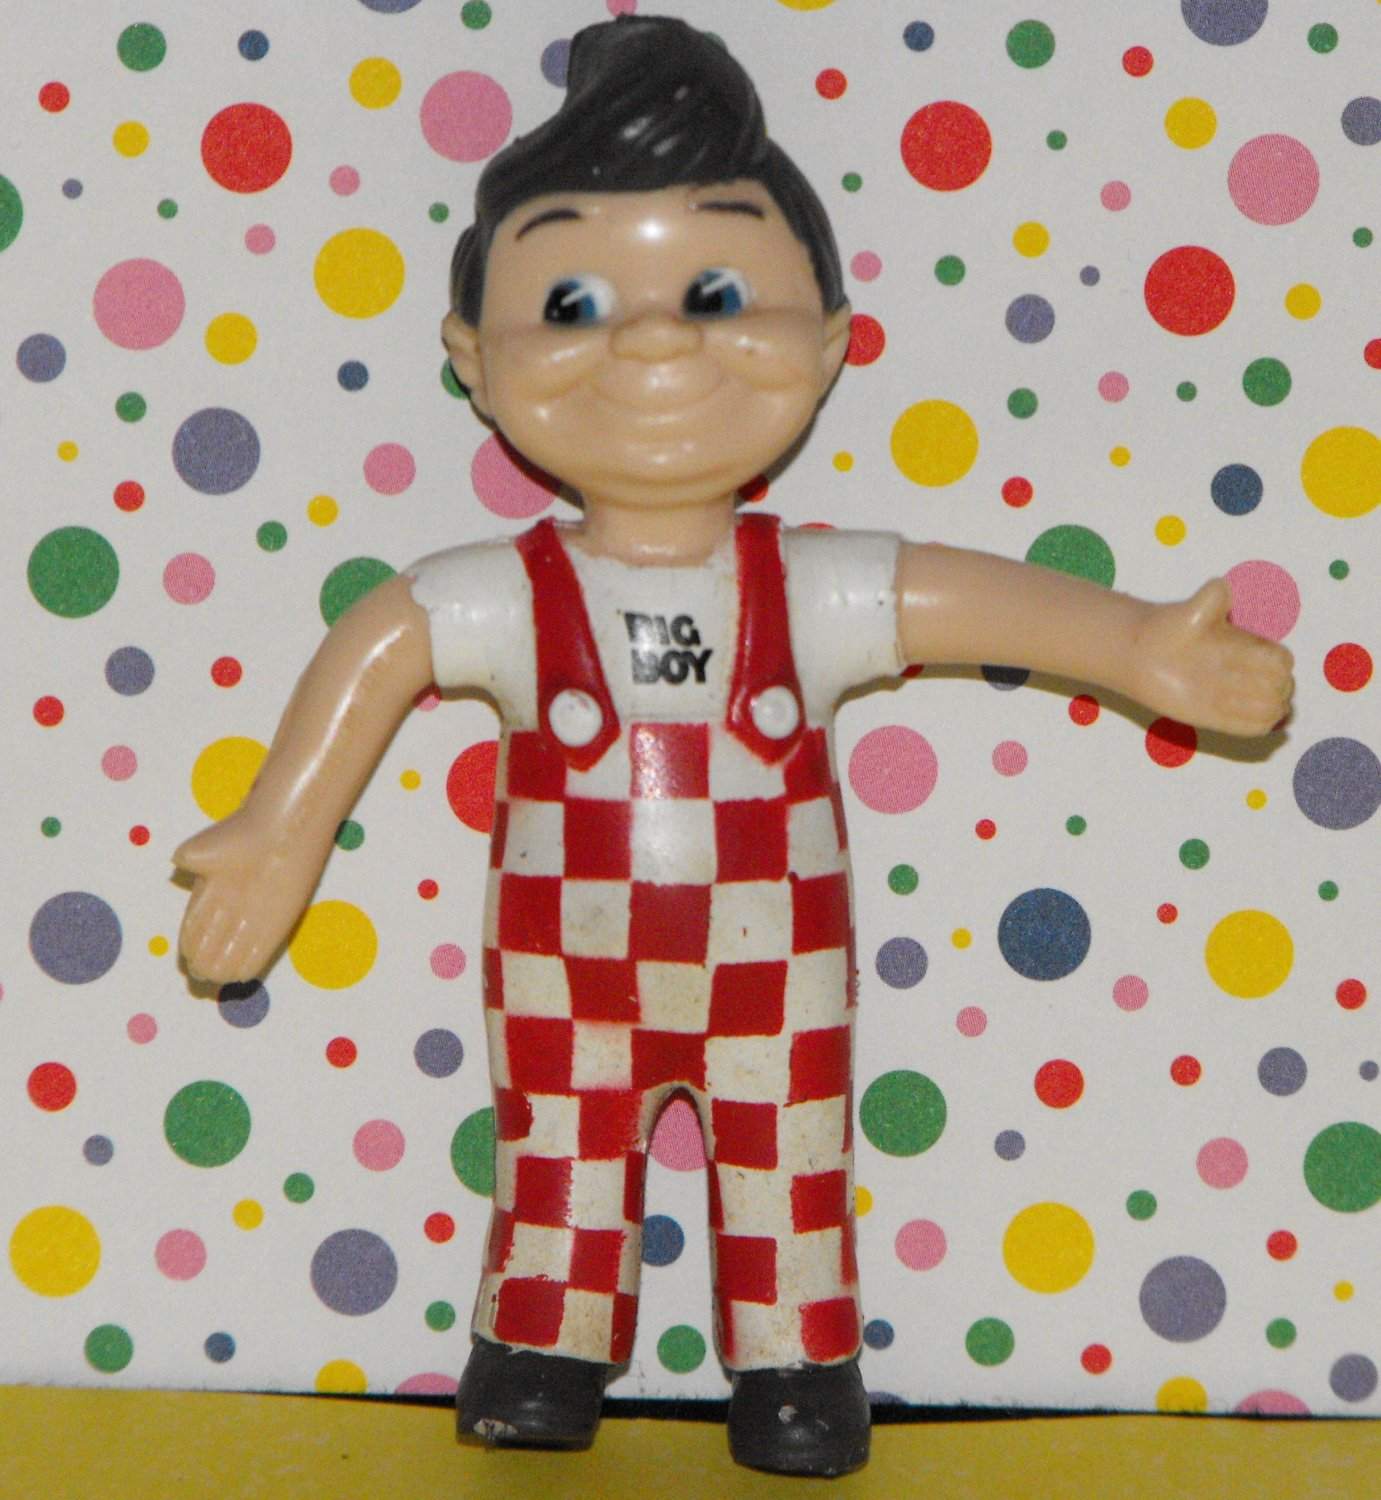 3*SOLD~TJ's Big Boy Figure 1996